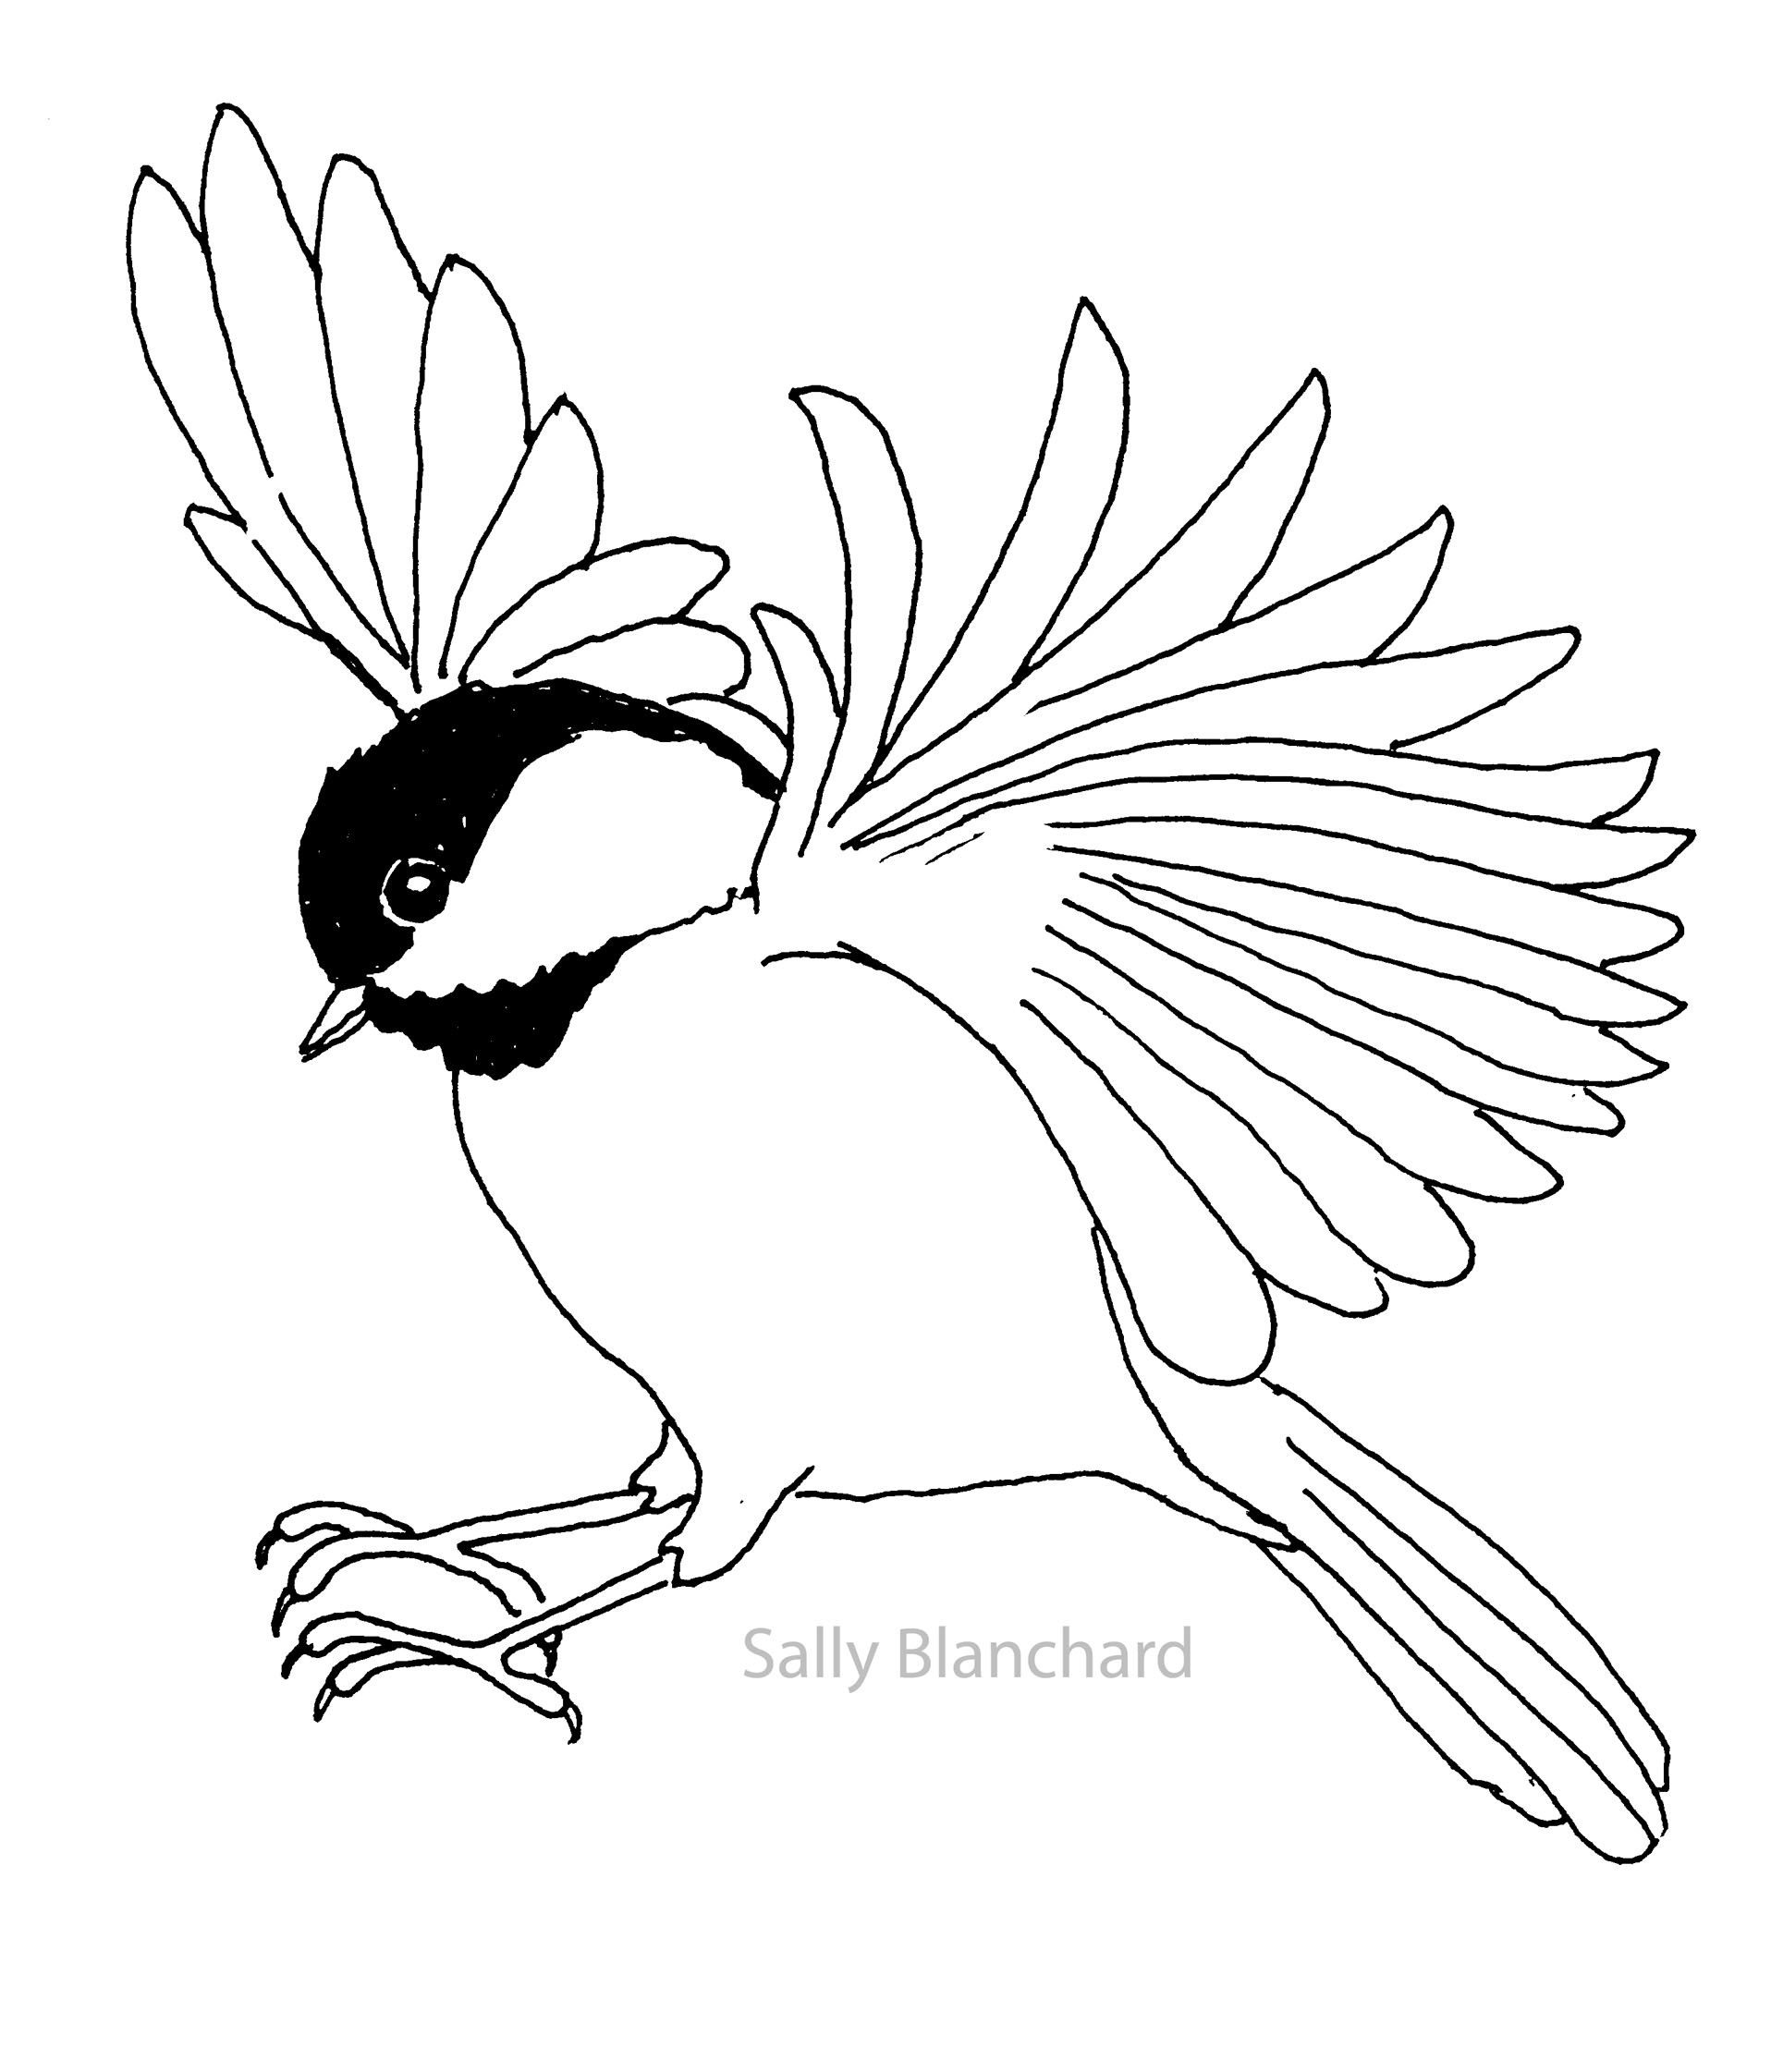 Sally Blanchard - Pen Line Drawing Landing Black-capped Chickadee ...